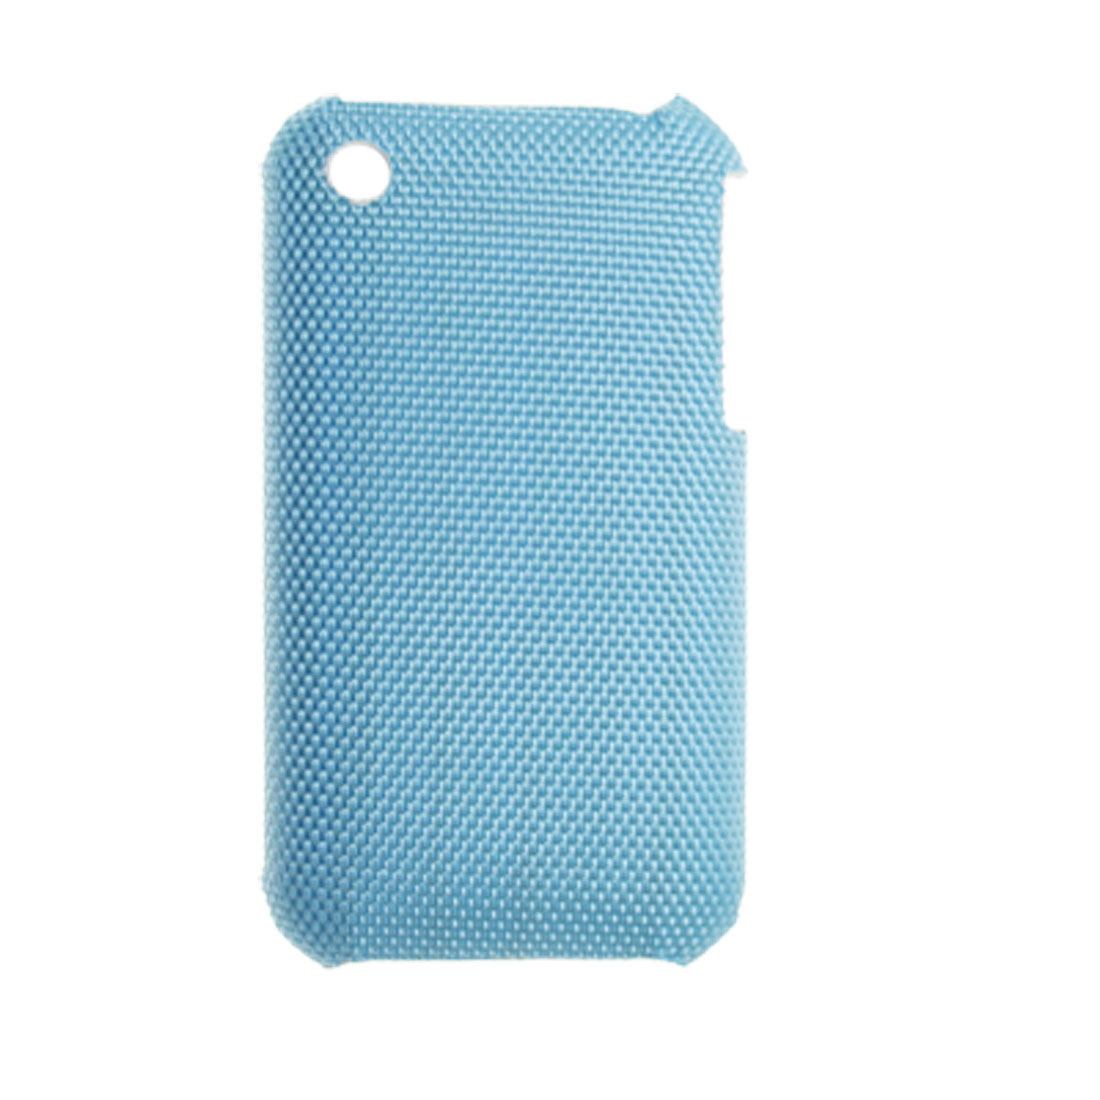 Blue Hard Plastic Back Cover Shield with Non-slip Exterior for iPhone 3G